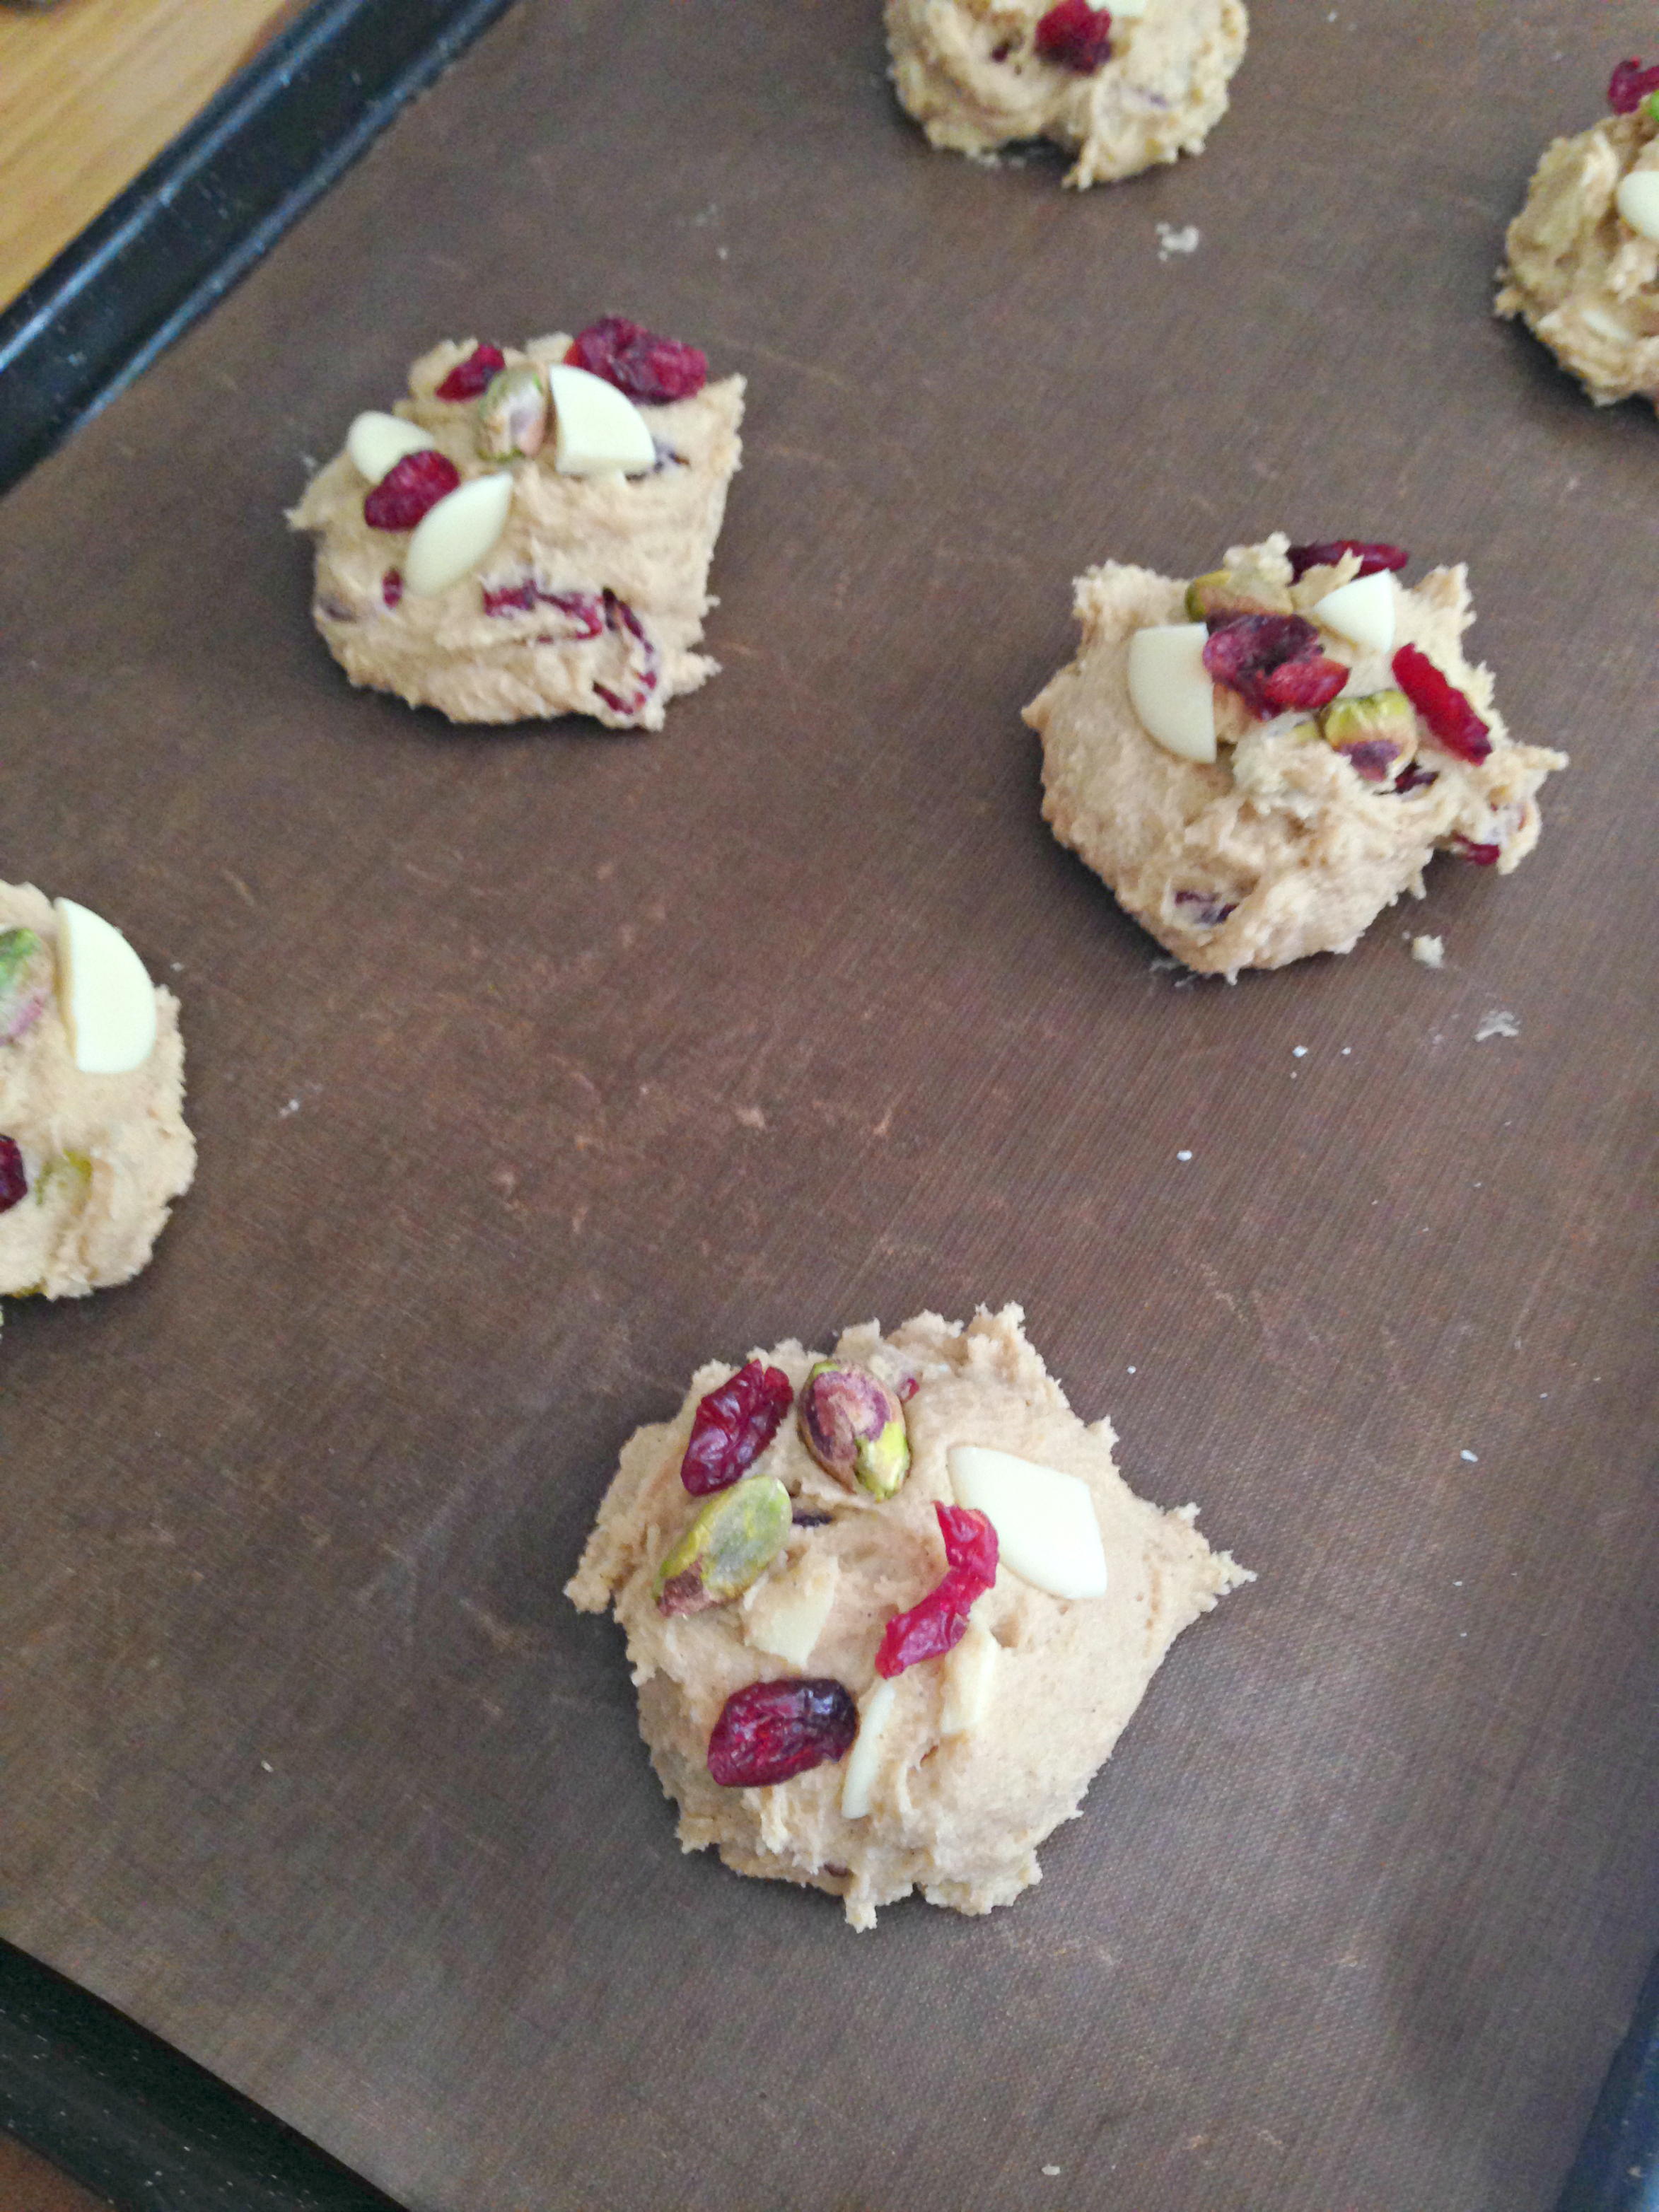 Cranberry, Pistachio and White Chocolate Cookies - Ease into the festive season with these gorgeously soft and chewy cranberry, pistachio and white chocolate cookies! Delicately spiced with a little ginger and cinnamon, they're incredibly moreish and a little bit Christmassy!